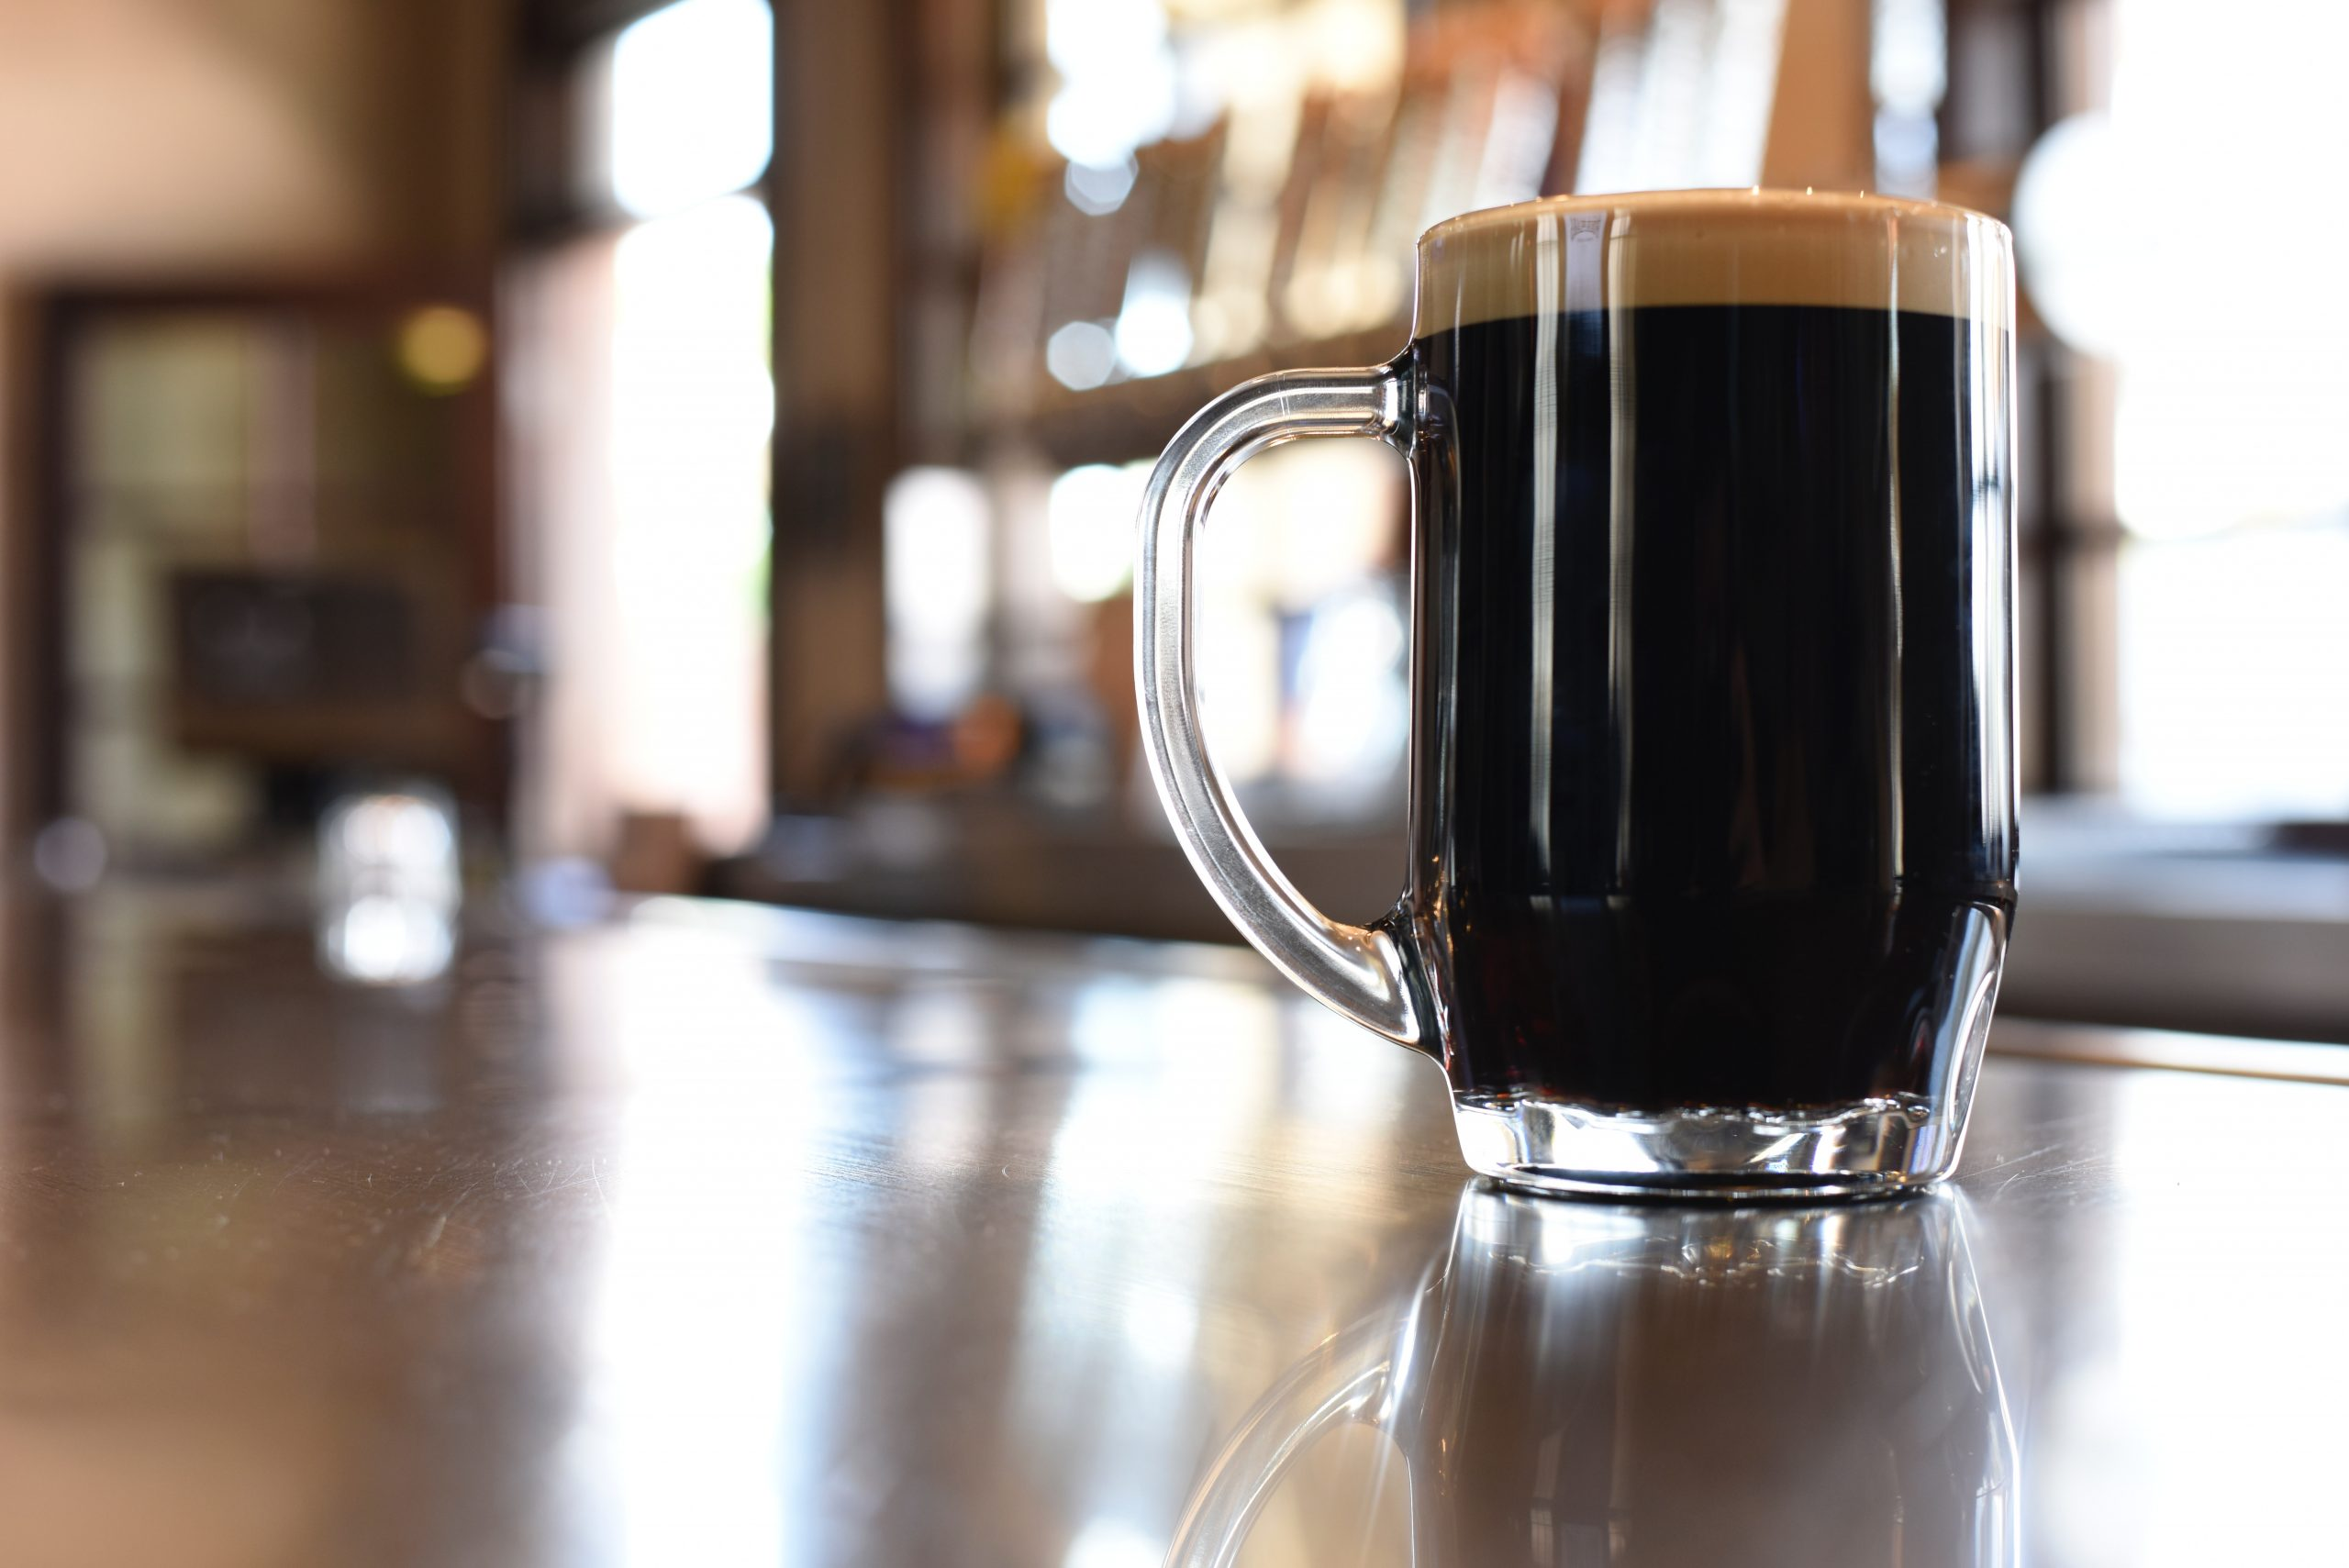 DARK BEER DRAUGHT clear glass mug with black liquid 1267363 scaled